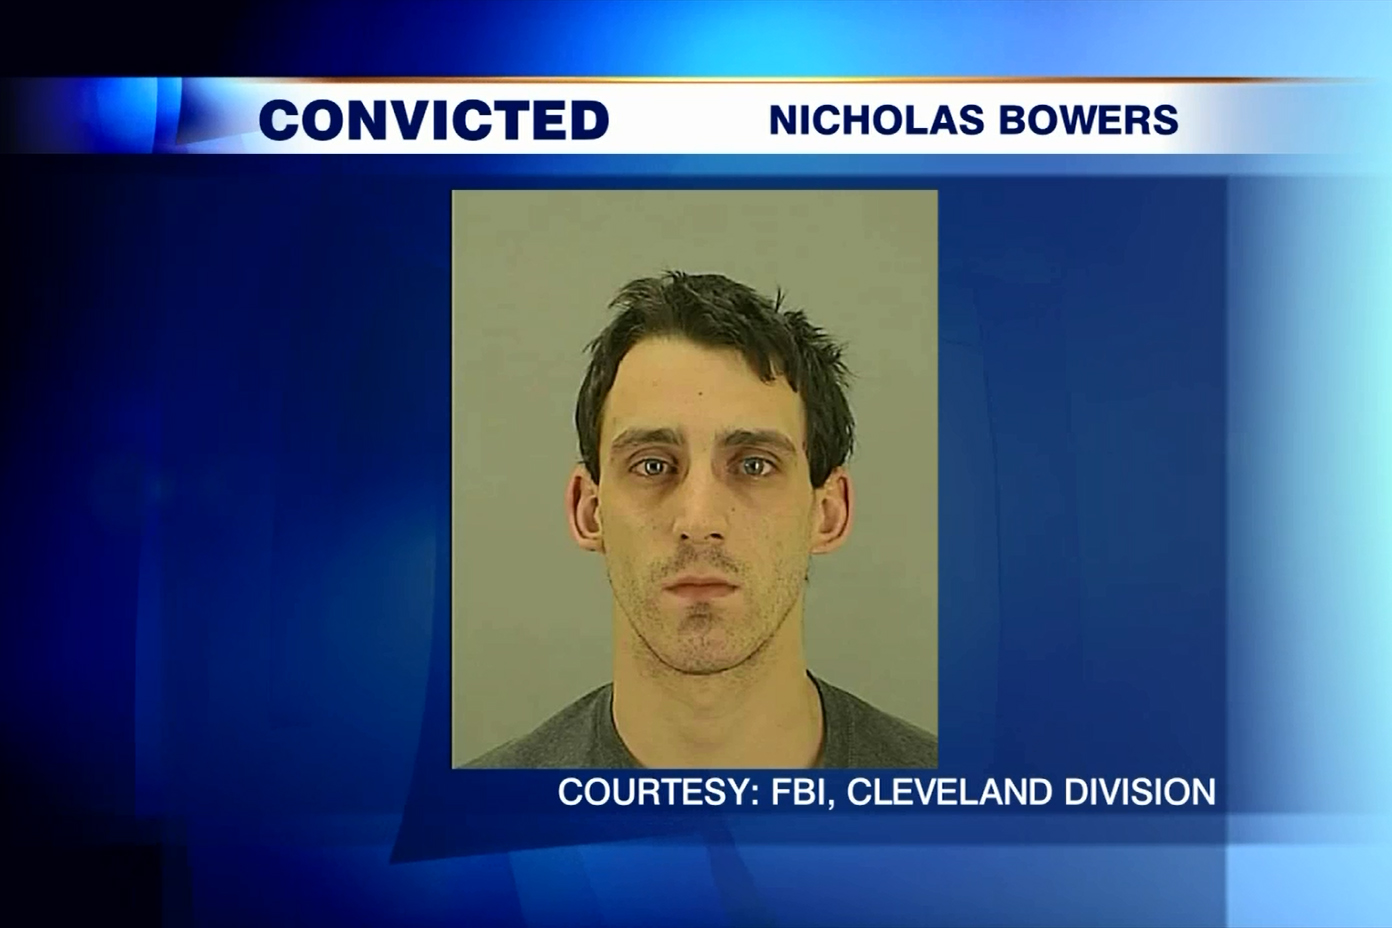 Nicholas Bowers was arrested at his home near Akron, Ohio, on Jan. 14, 2014 after he was found to be stalking a 12-year-old Toronto girl online. HANDOUT/FBI